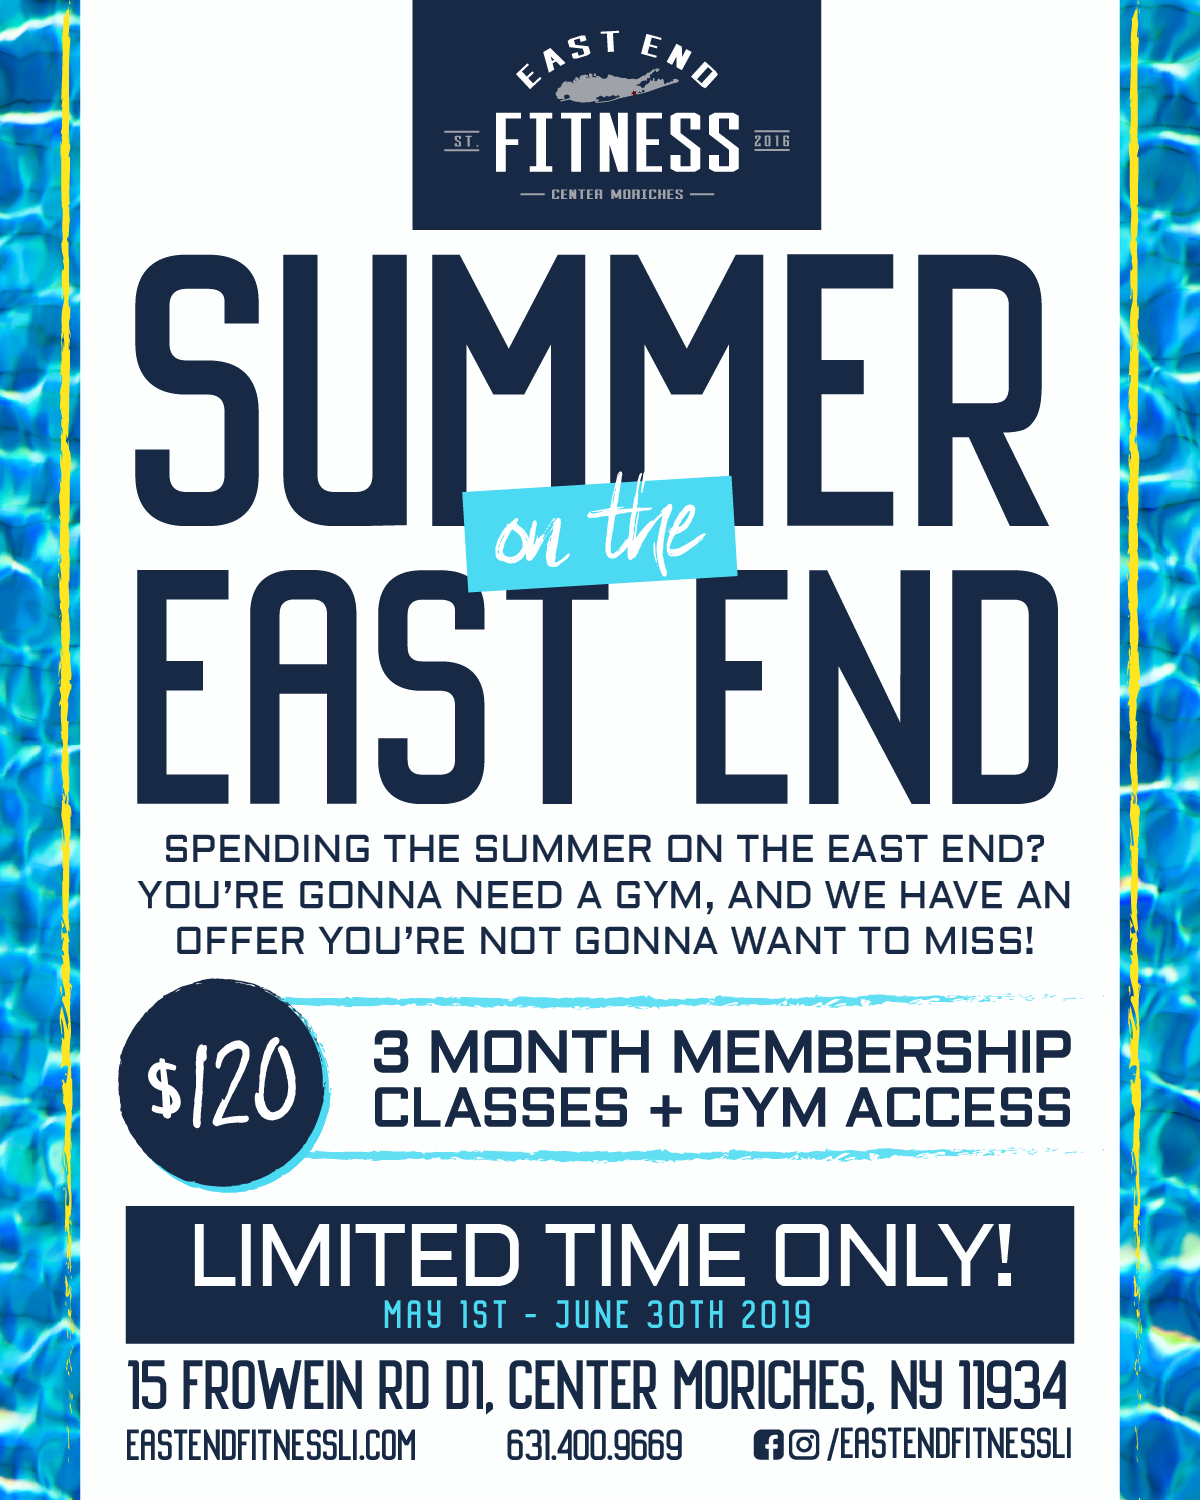 Summer on the East End Flyer, $120 for a three month membership from May 1st to June 30th